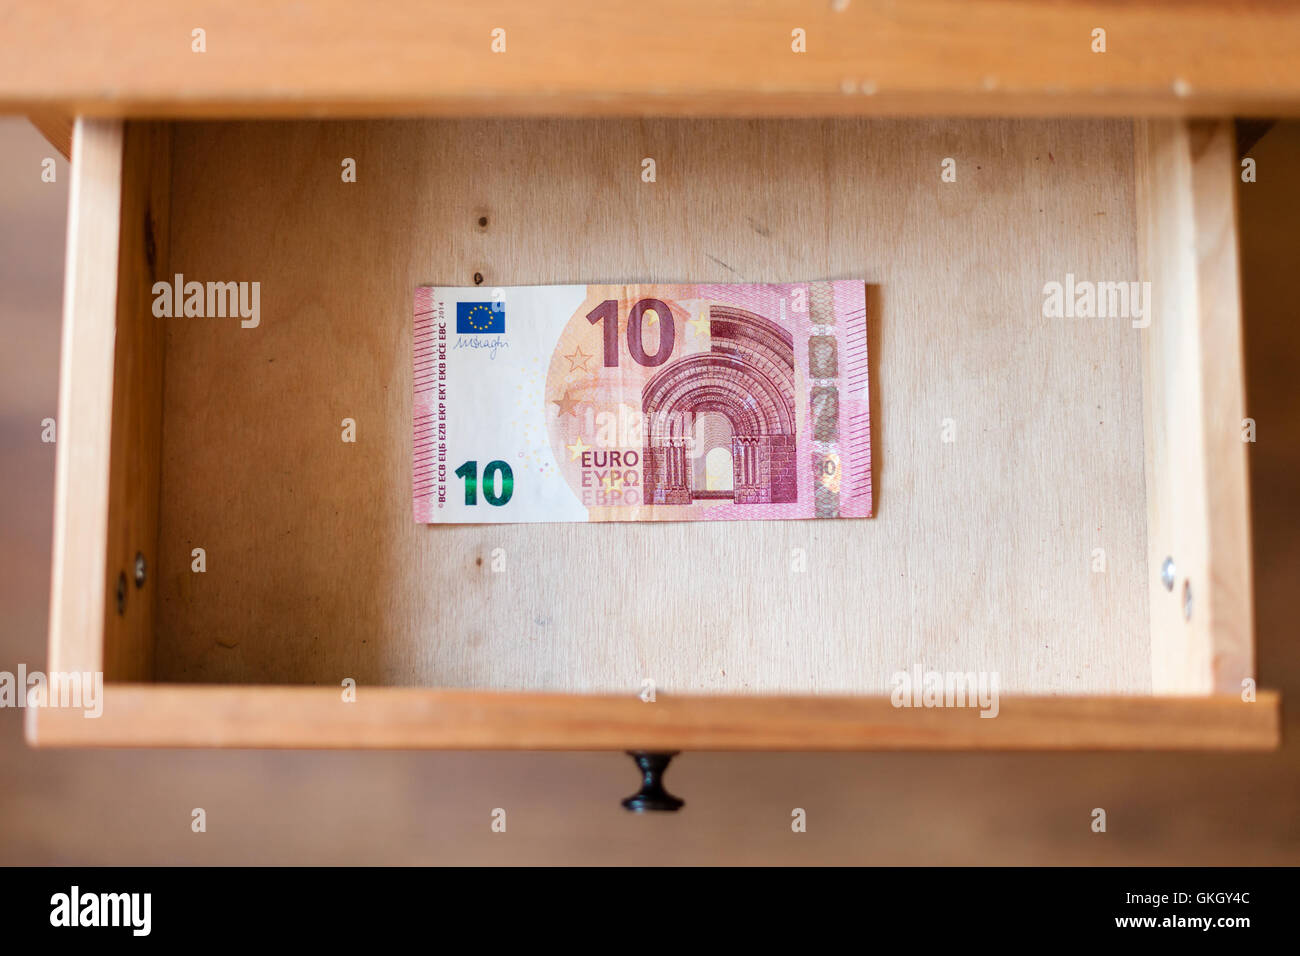 above view of ten euro banknote in open drawer of nightstand - Stock Image